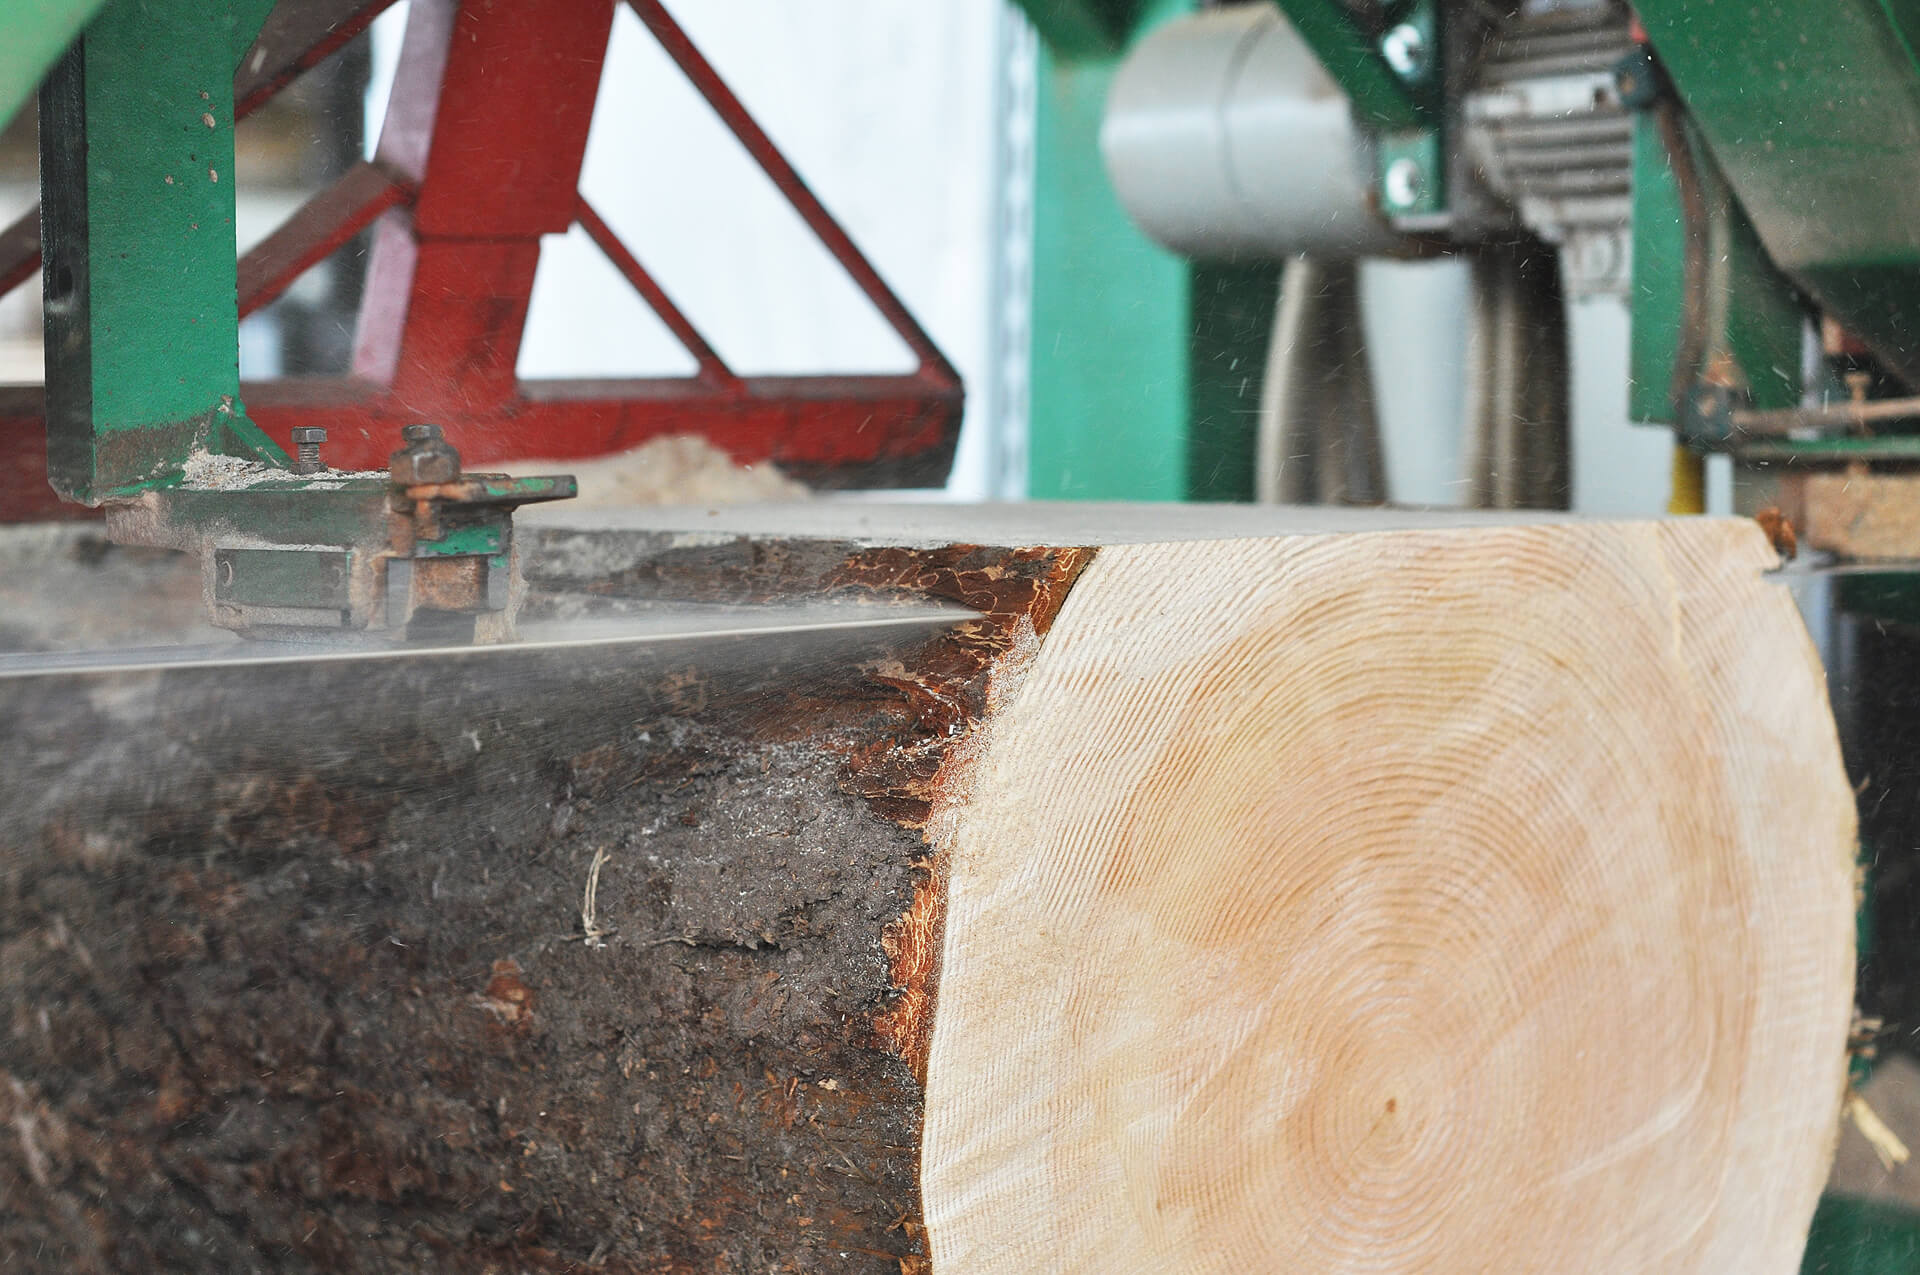 The Douglas trunk is cut into floorboards on a horizontal bandsaw